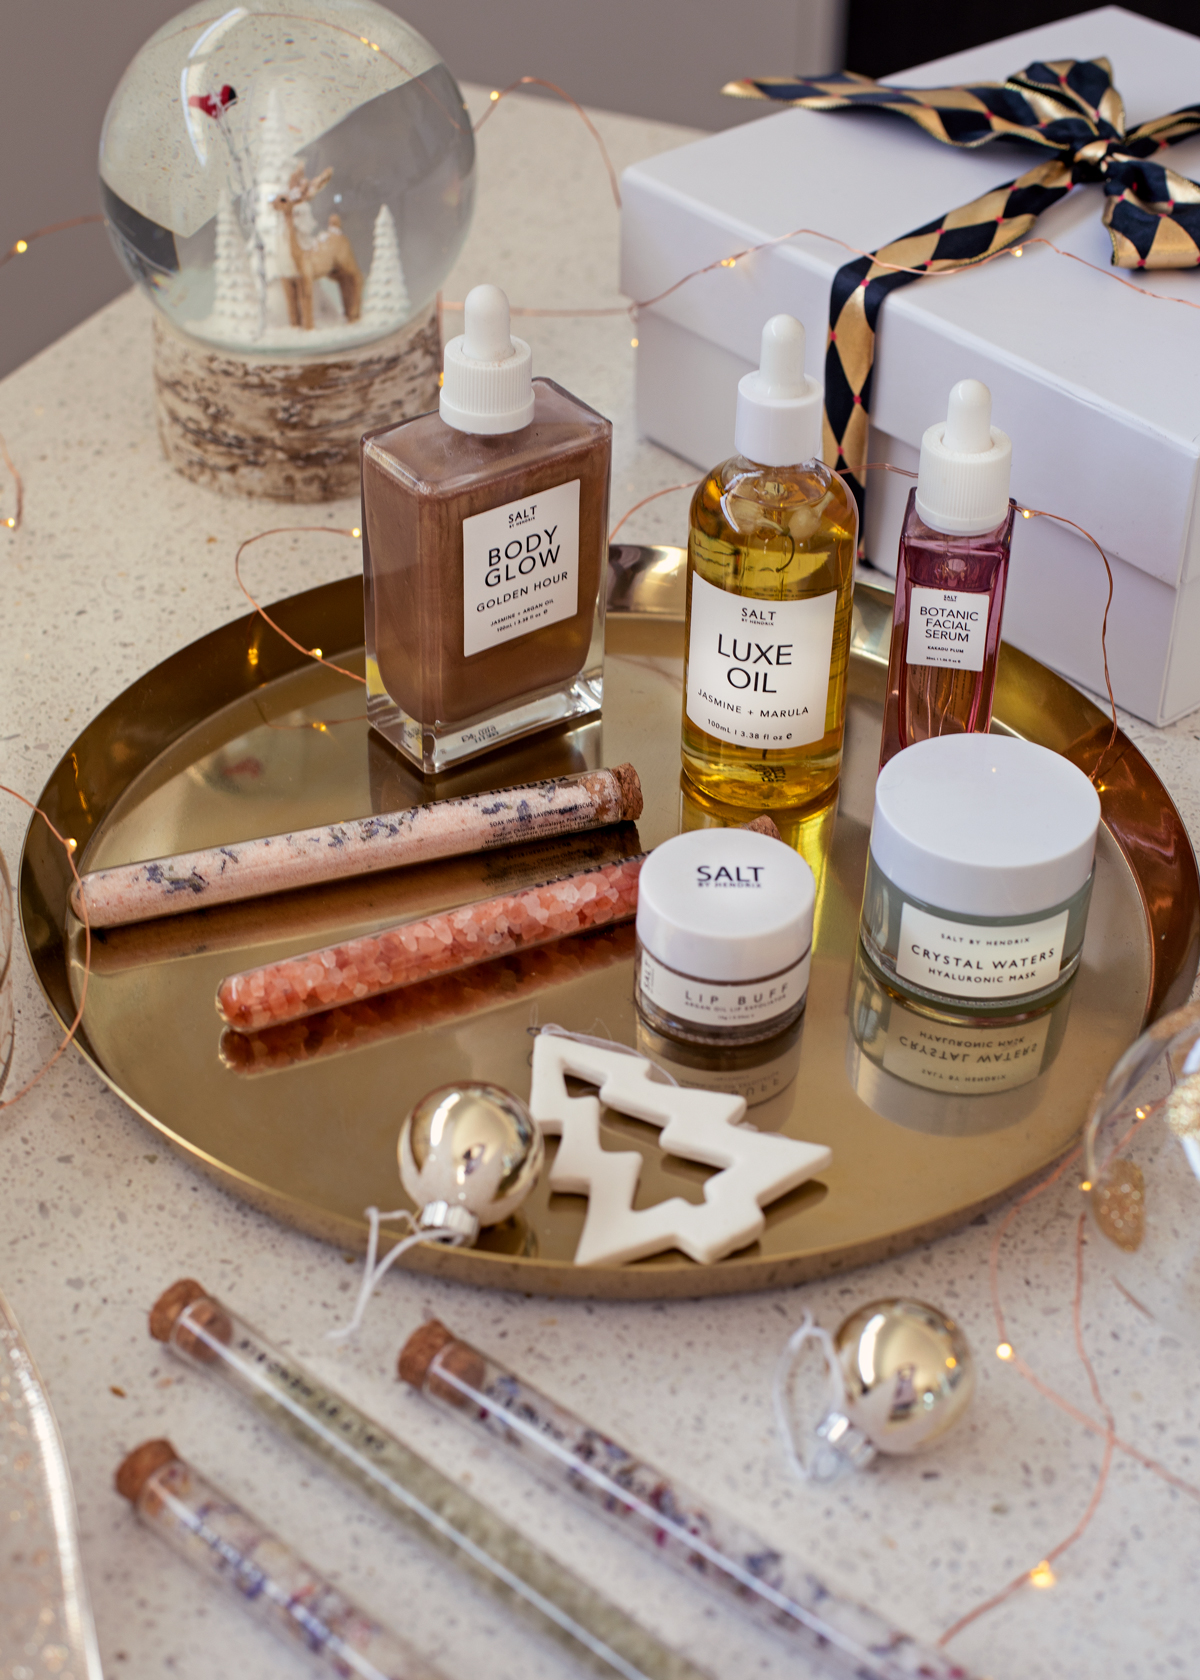 2018 Christmas gift guide Inspiring Wit blog featuring beauty gift ideas Salt by Hendrix products